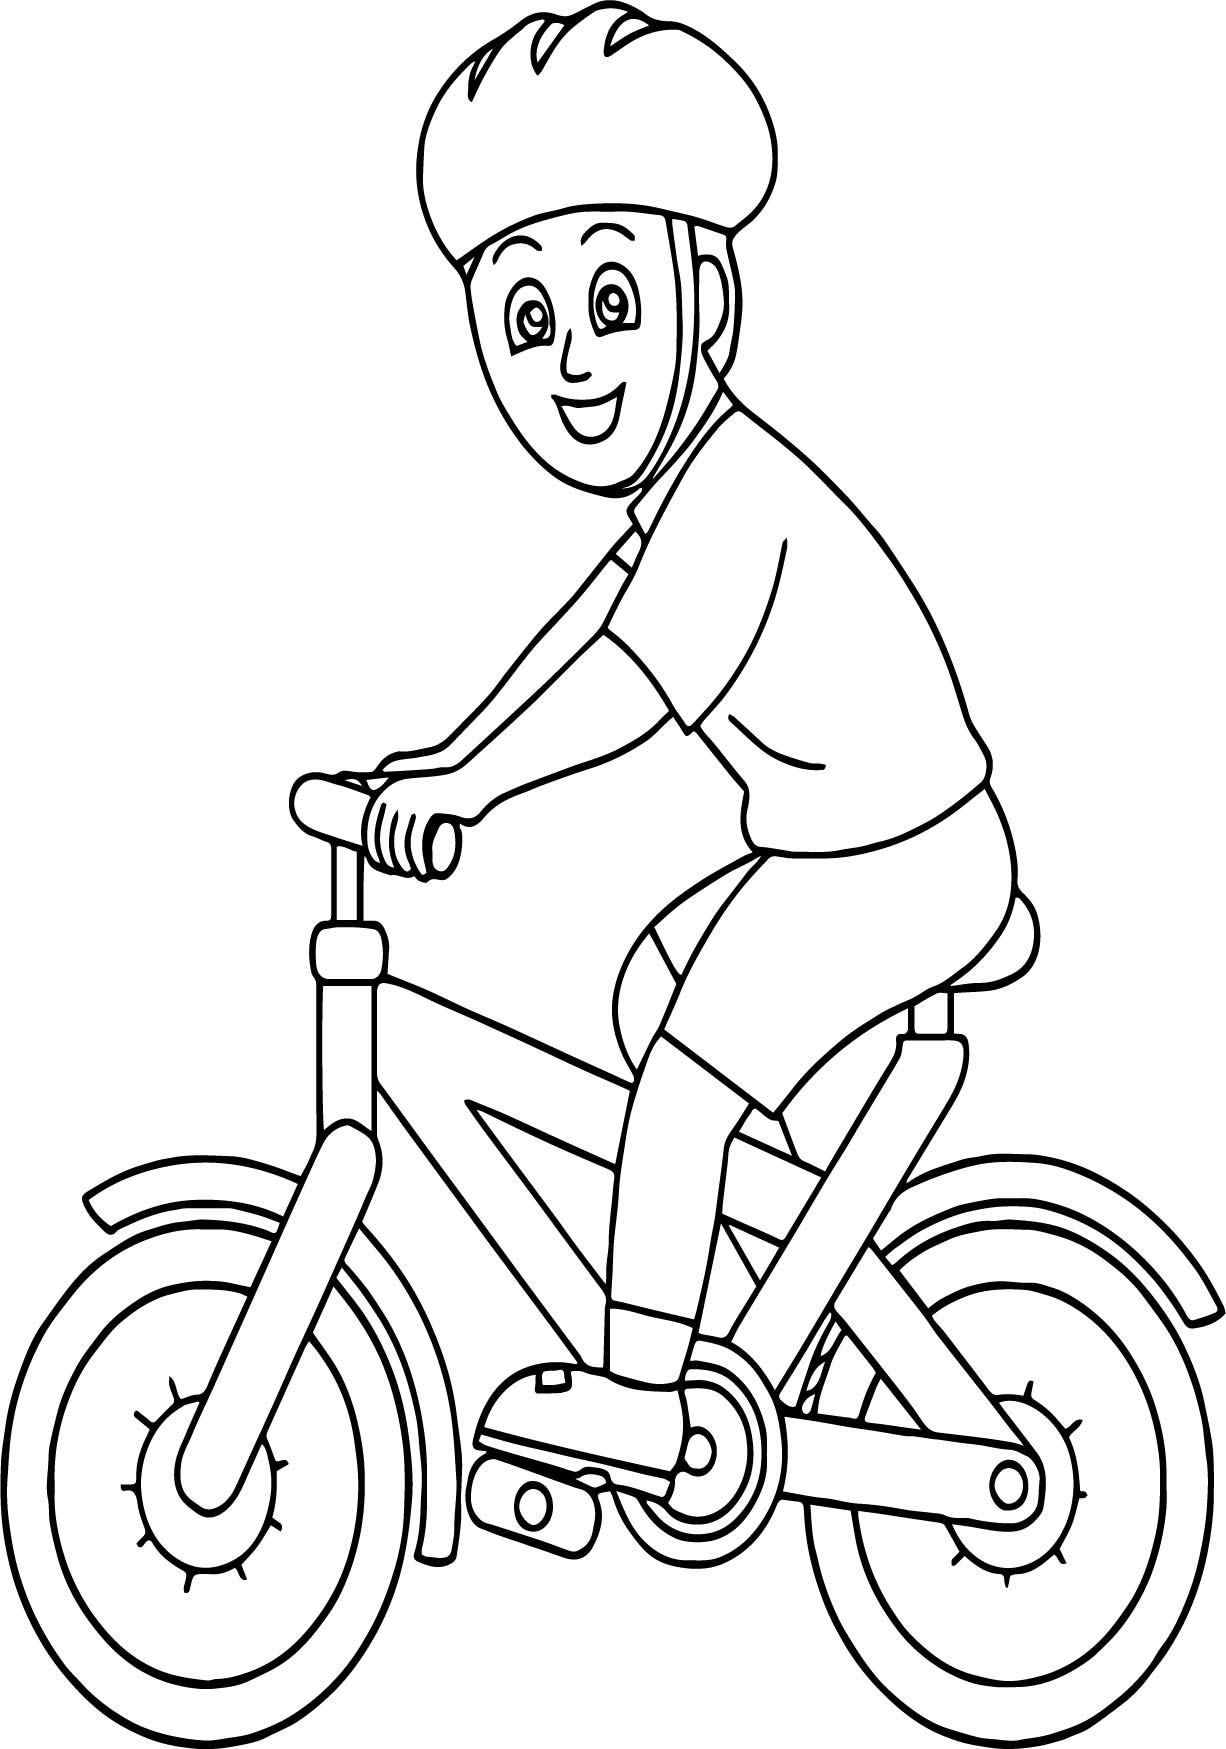 1226x1749 Bike Coloring Page Free Draw To Color